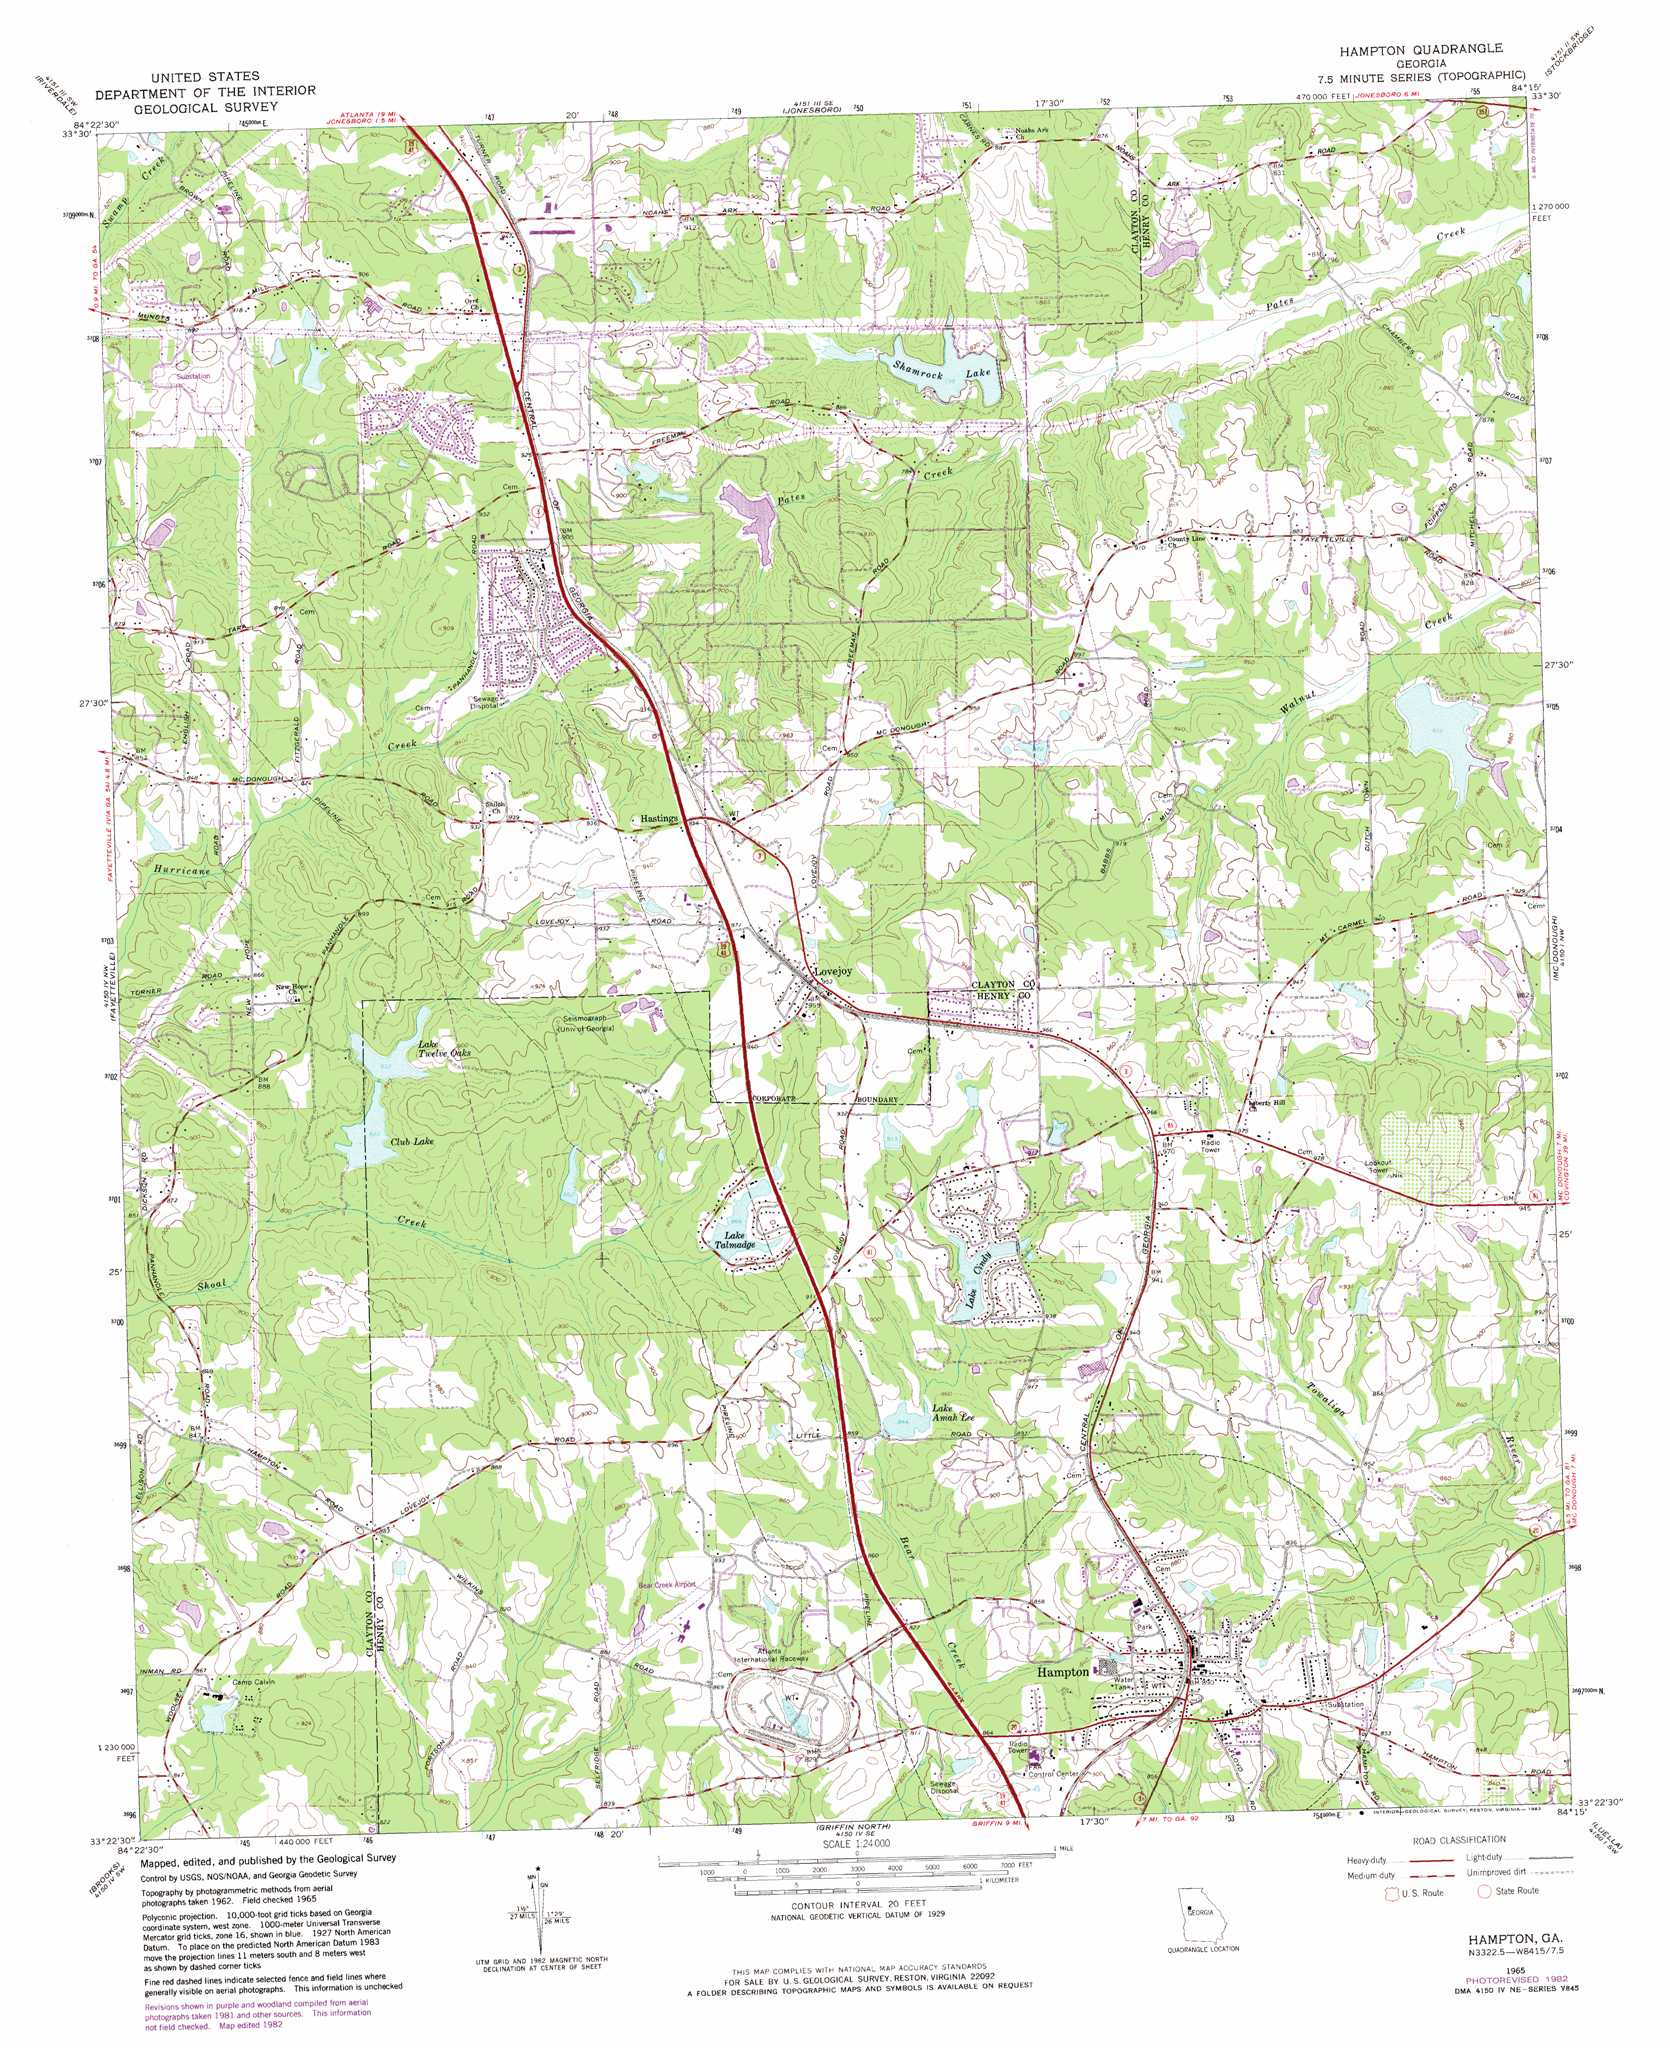 printable map of tennessee with cities with 33084d3 on Brooklyn Street Map further Houston George Bush Airport Map also Big Map besides The Top 11 Shareable Innovations In Chattanooga Tennessee furthermore Omaha Hotels And Sightseeings Map.